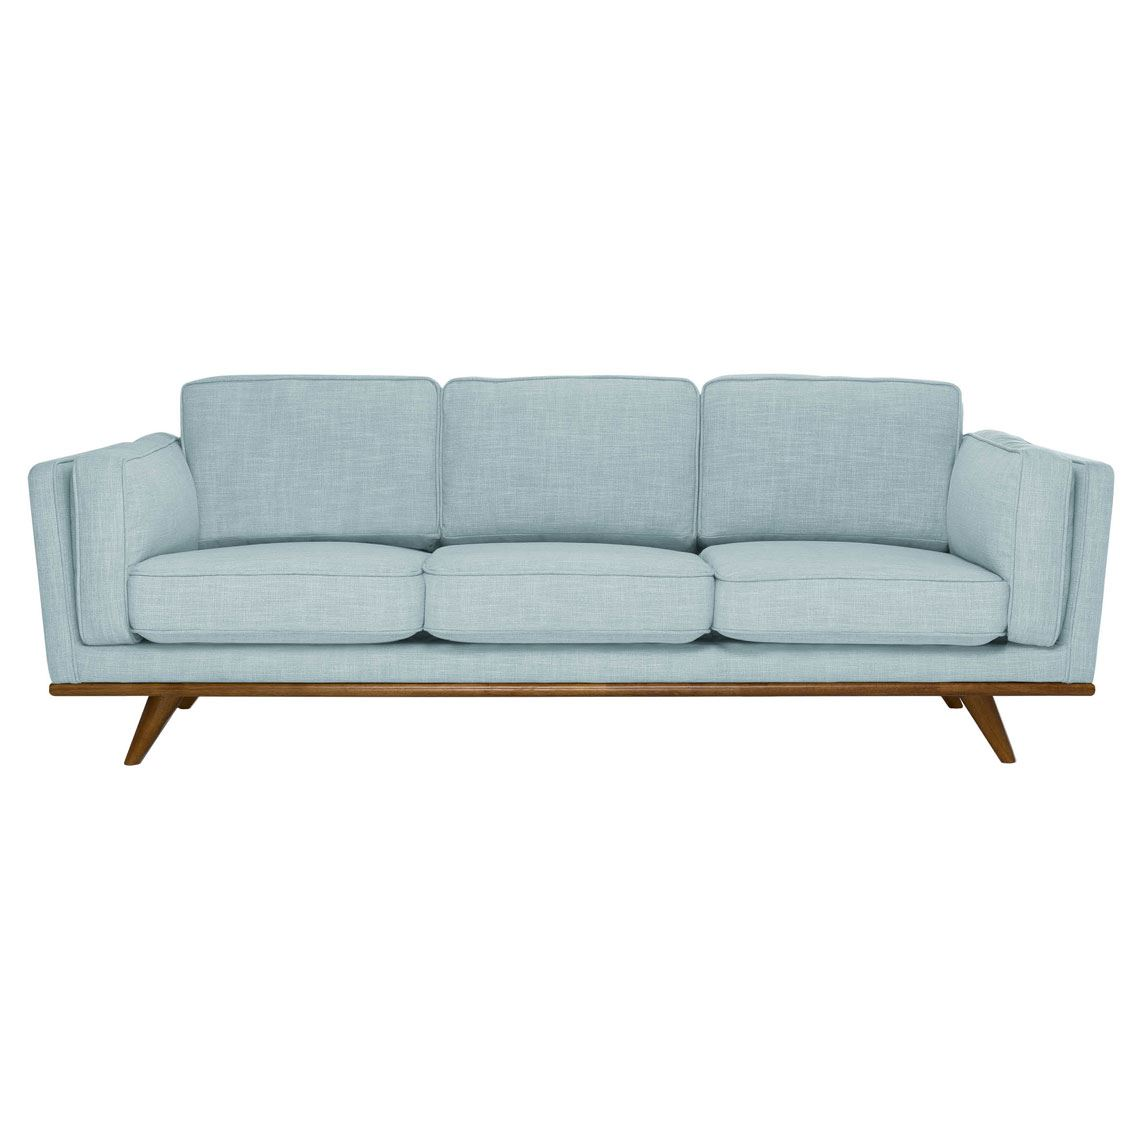 Dahlia 3 Seat Fabric Sofa Size W 229cm x D 93cm x H 82cm in Skyline 90% Polyester/10% Linen/Woven Freedom by Freedom, a Sofas for sale on Style Sourcebook